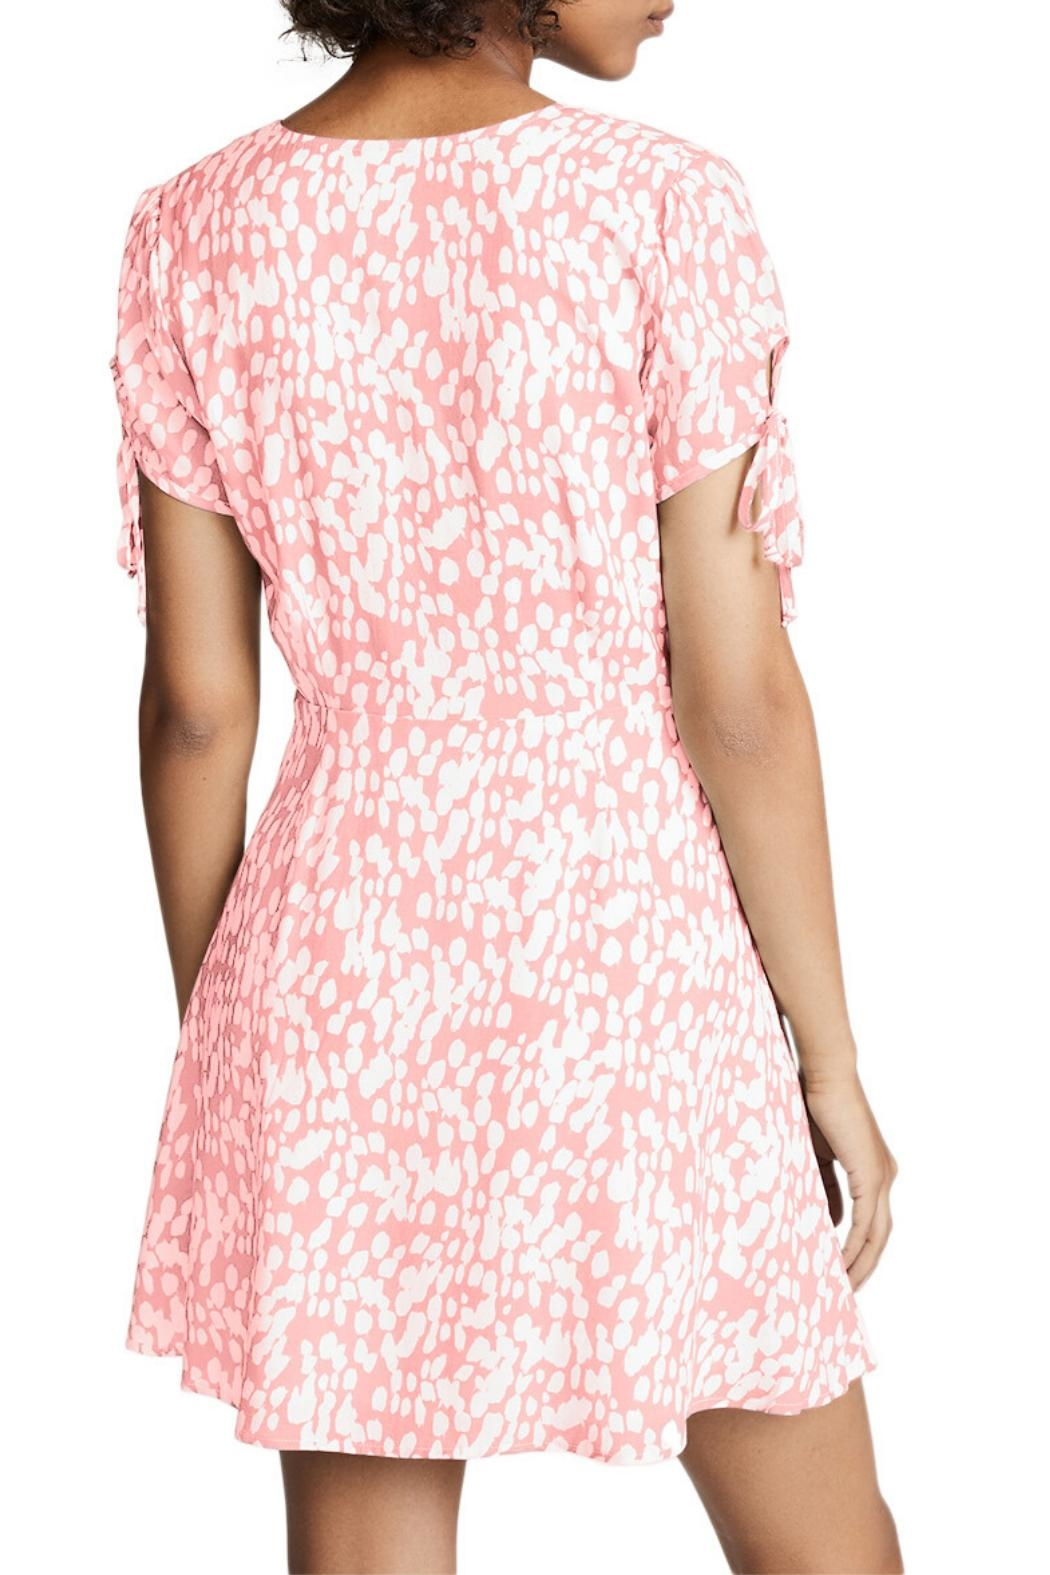 Unbranded Pink Floral Dress - Front Full Image